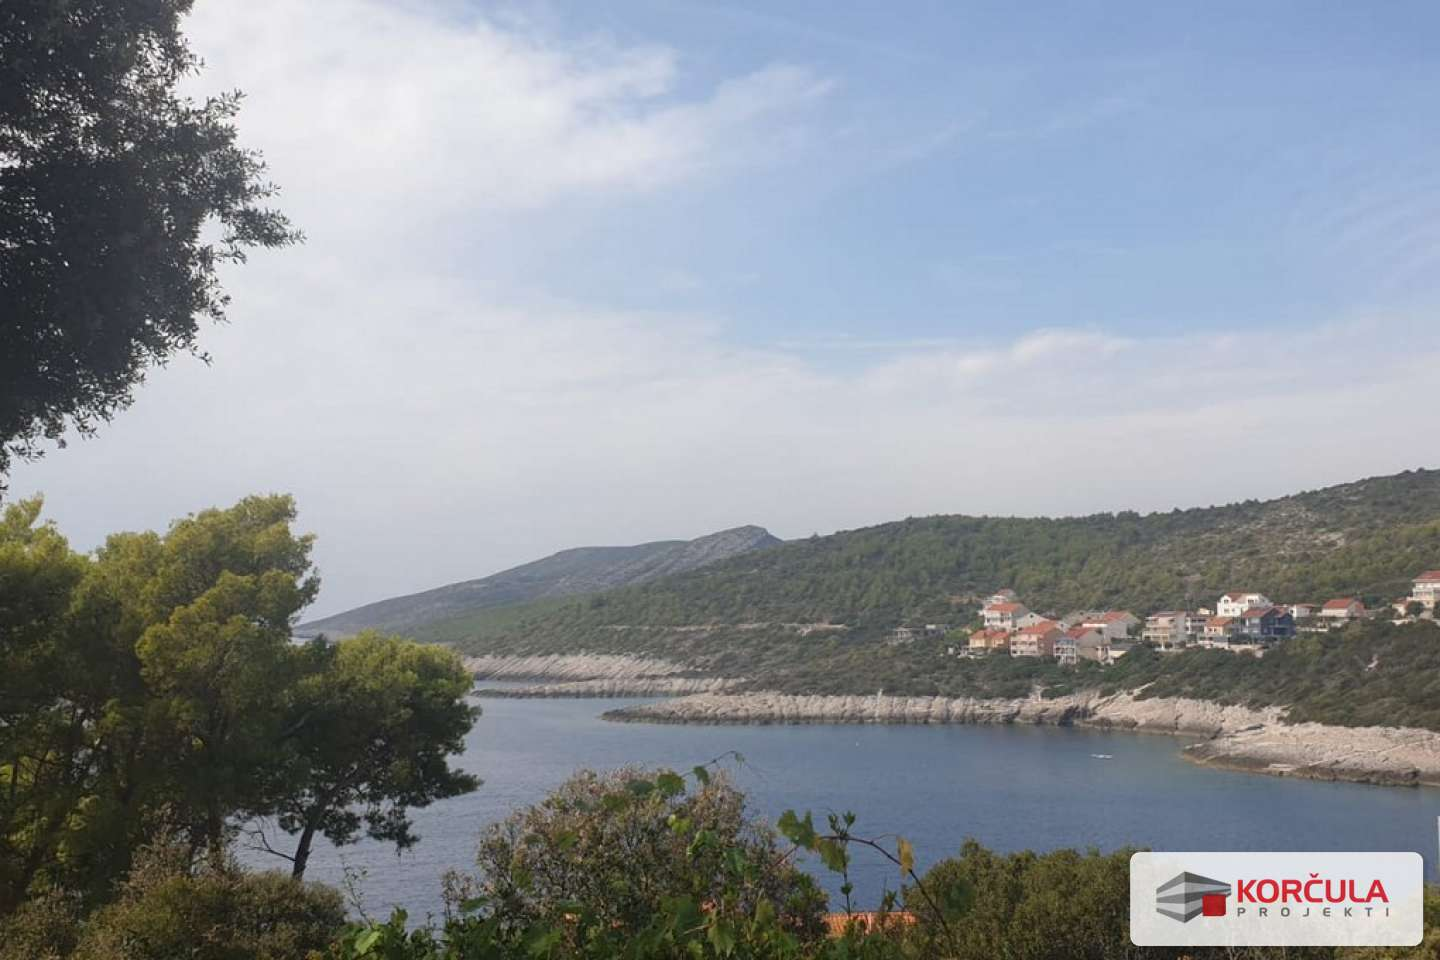 Building land in a charming tourist bay, close proximity to the sea, building permit approved